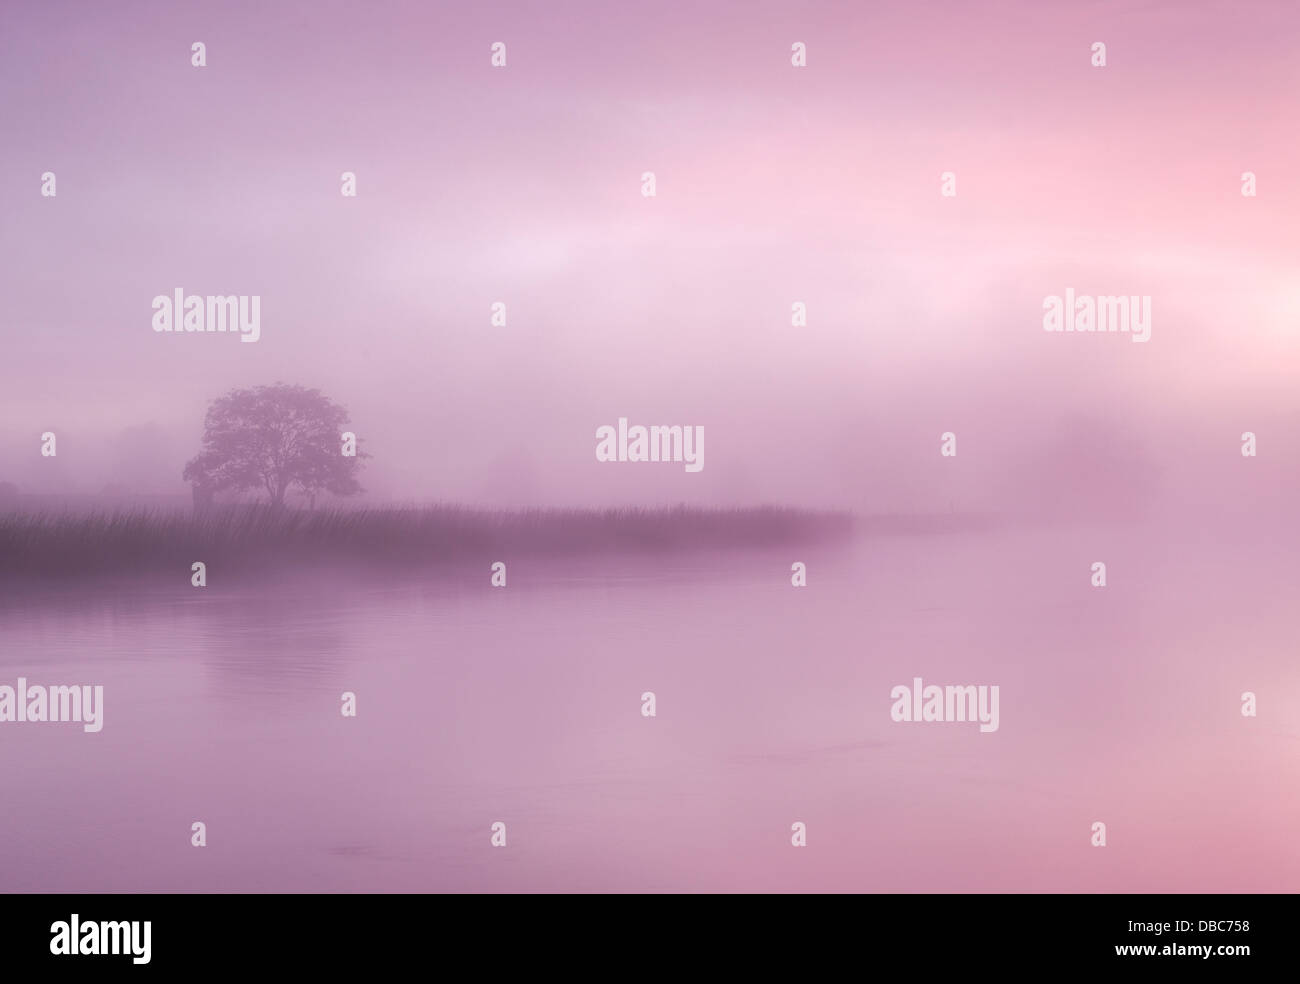 Irish Landscapes, Misty morning on the banks of the River Boyne County Meath Ireland - Stock Image